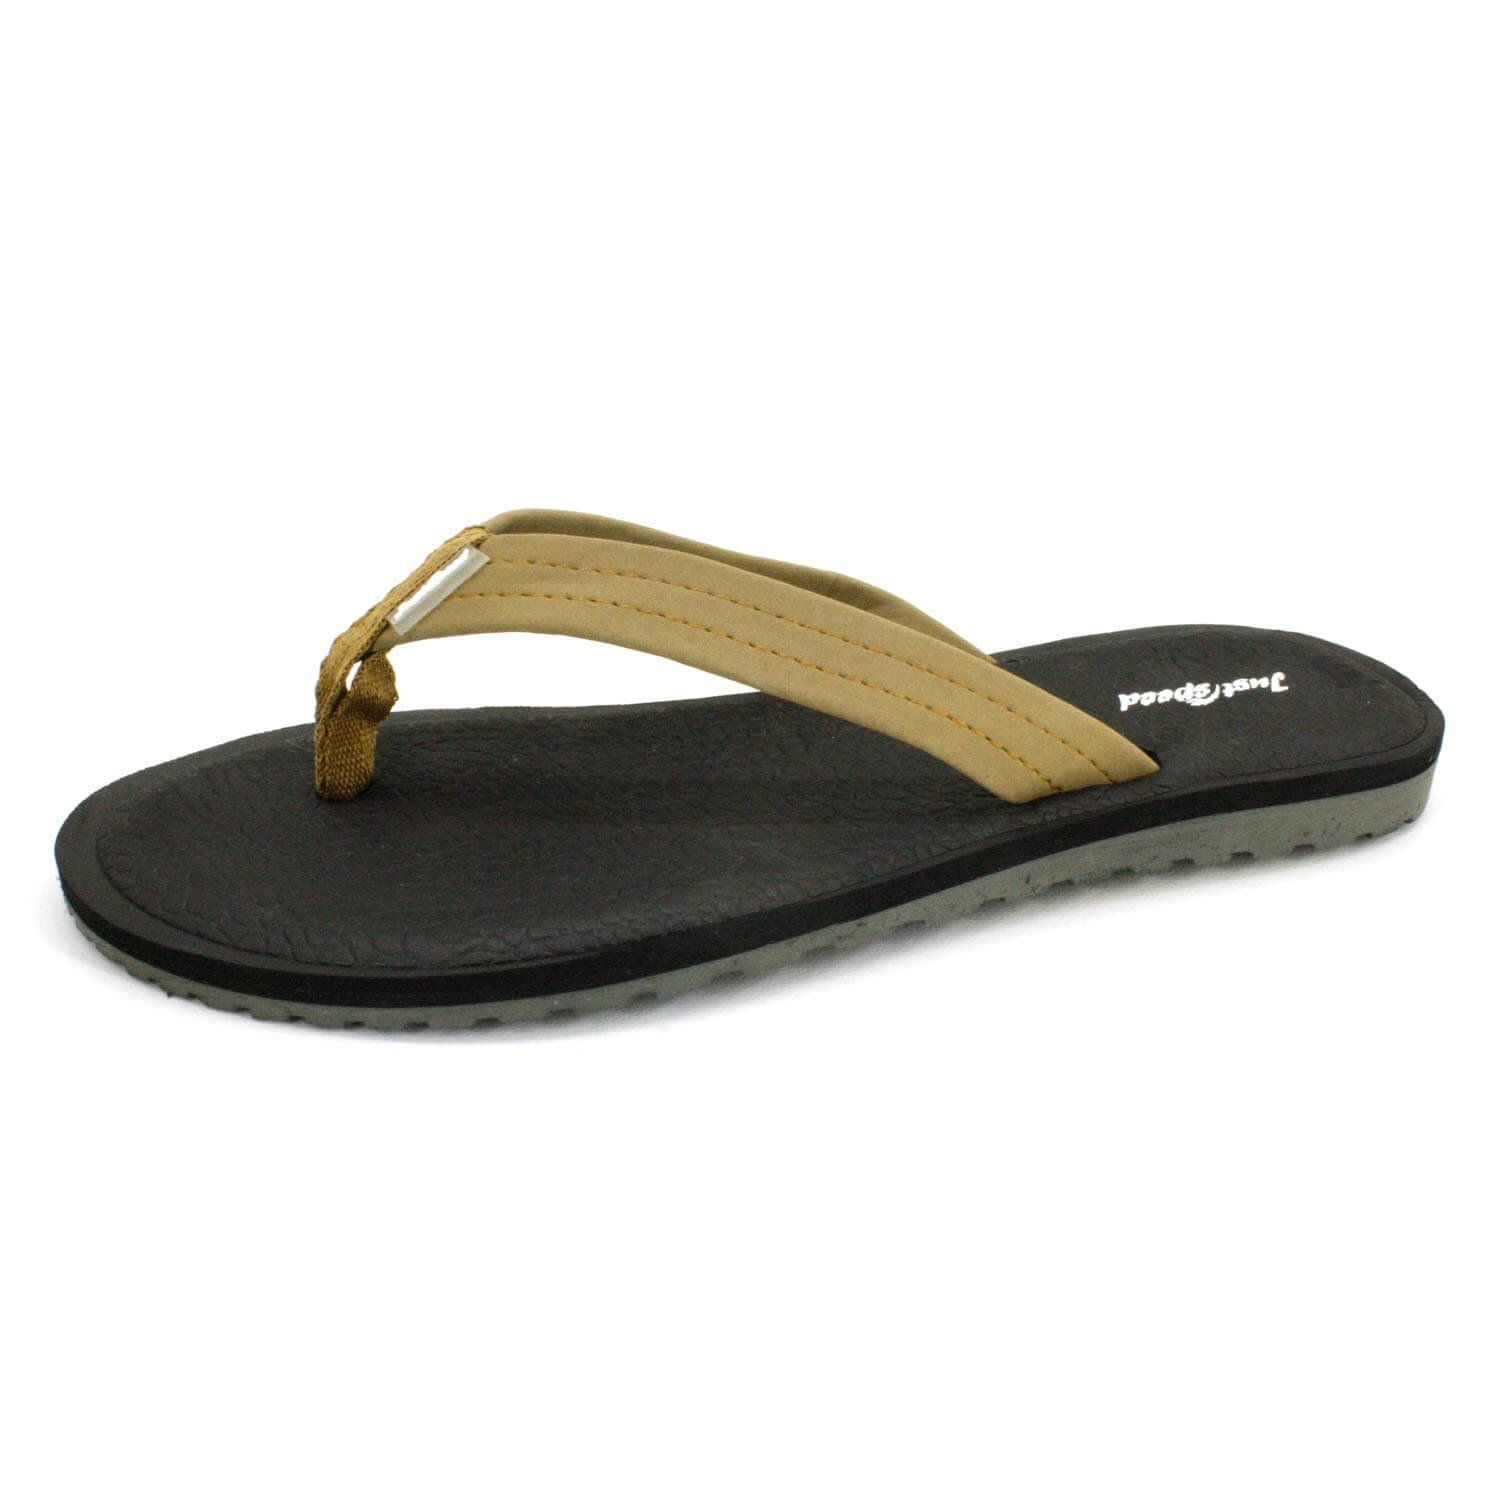 9898165fc5f076 Just Speed Women s Flip Flops